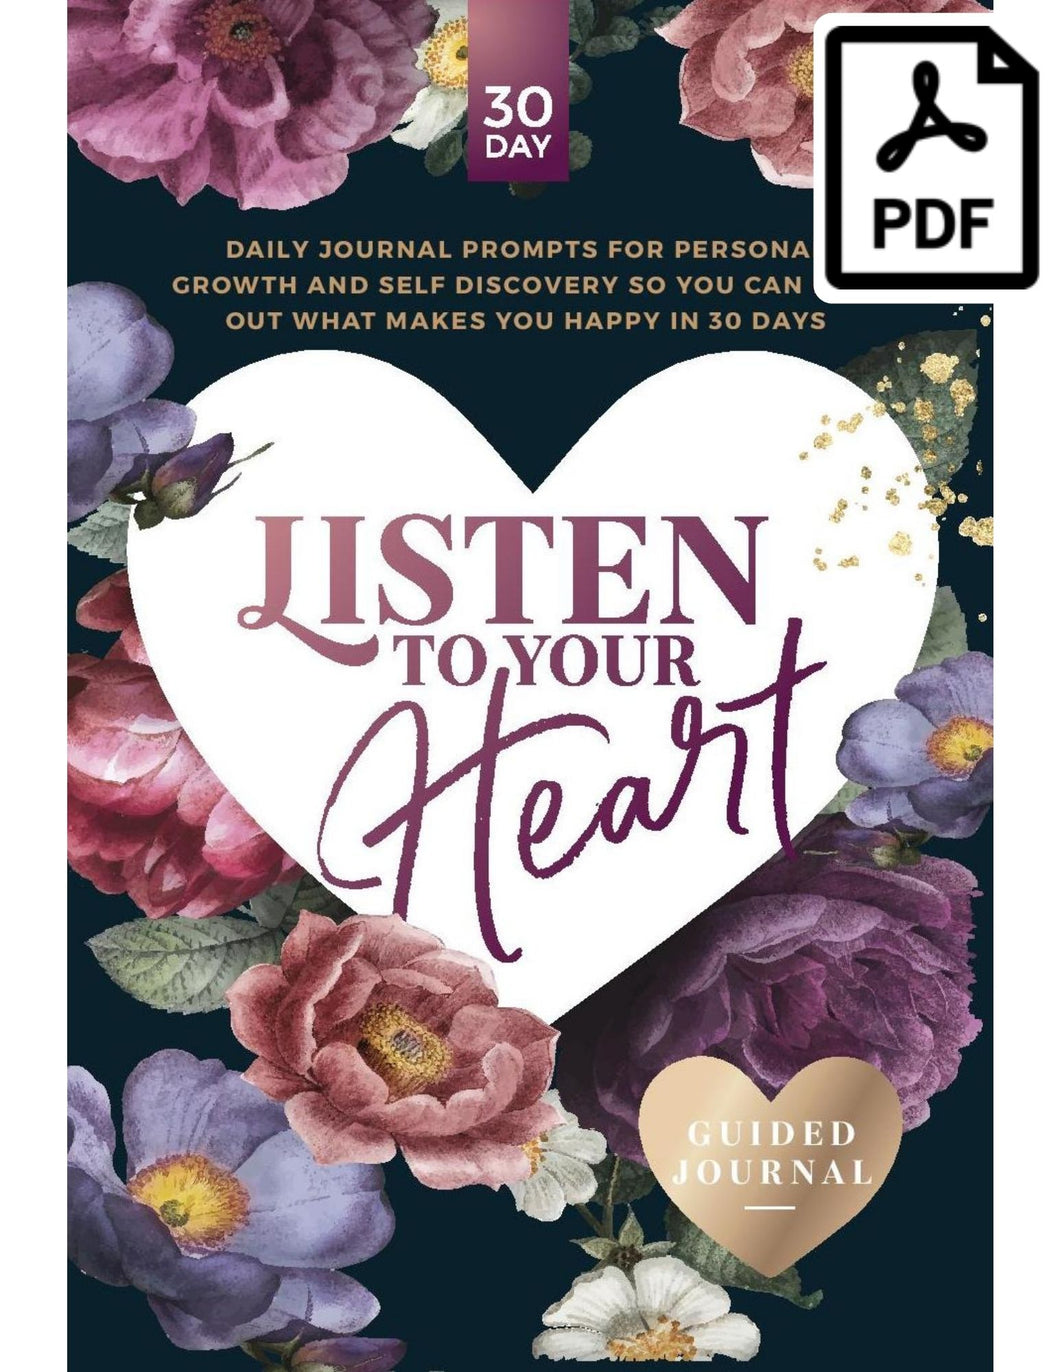 listen to your heart guided journal